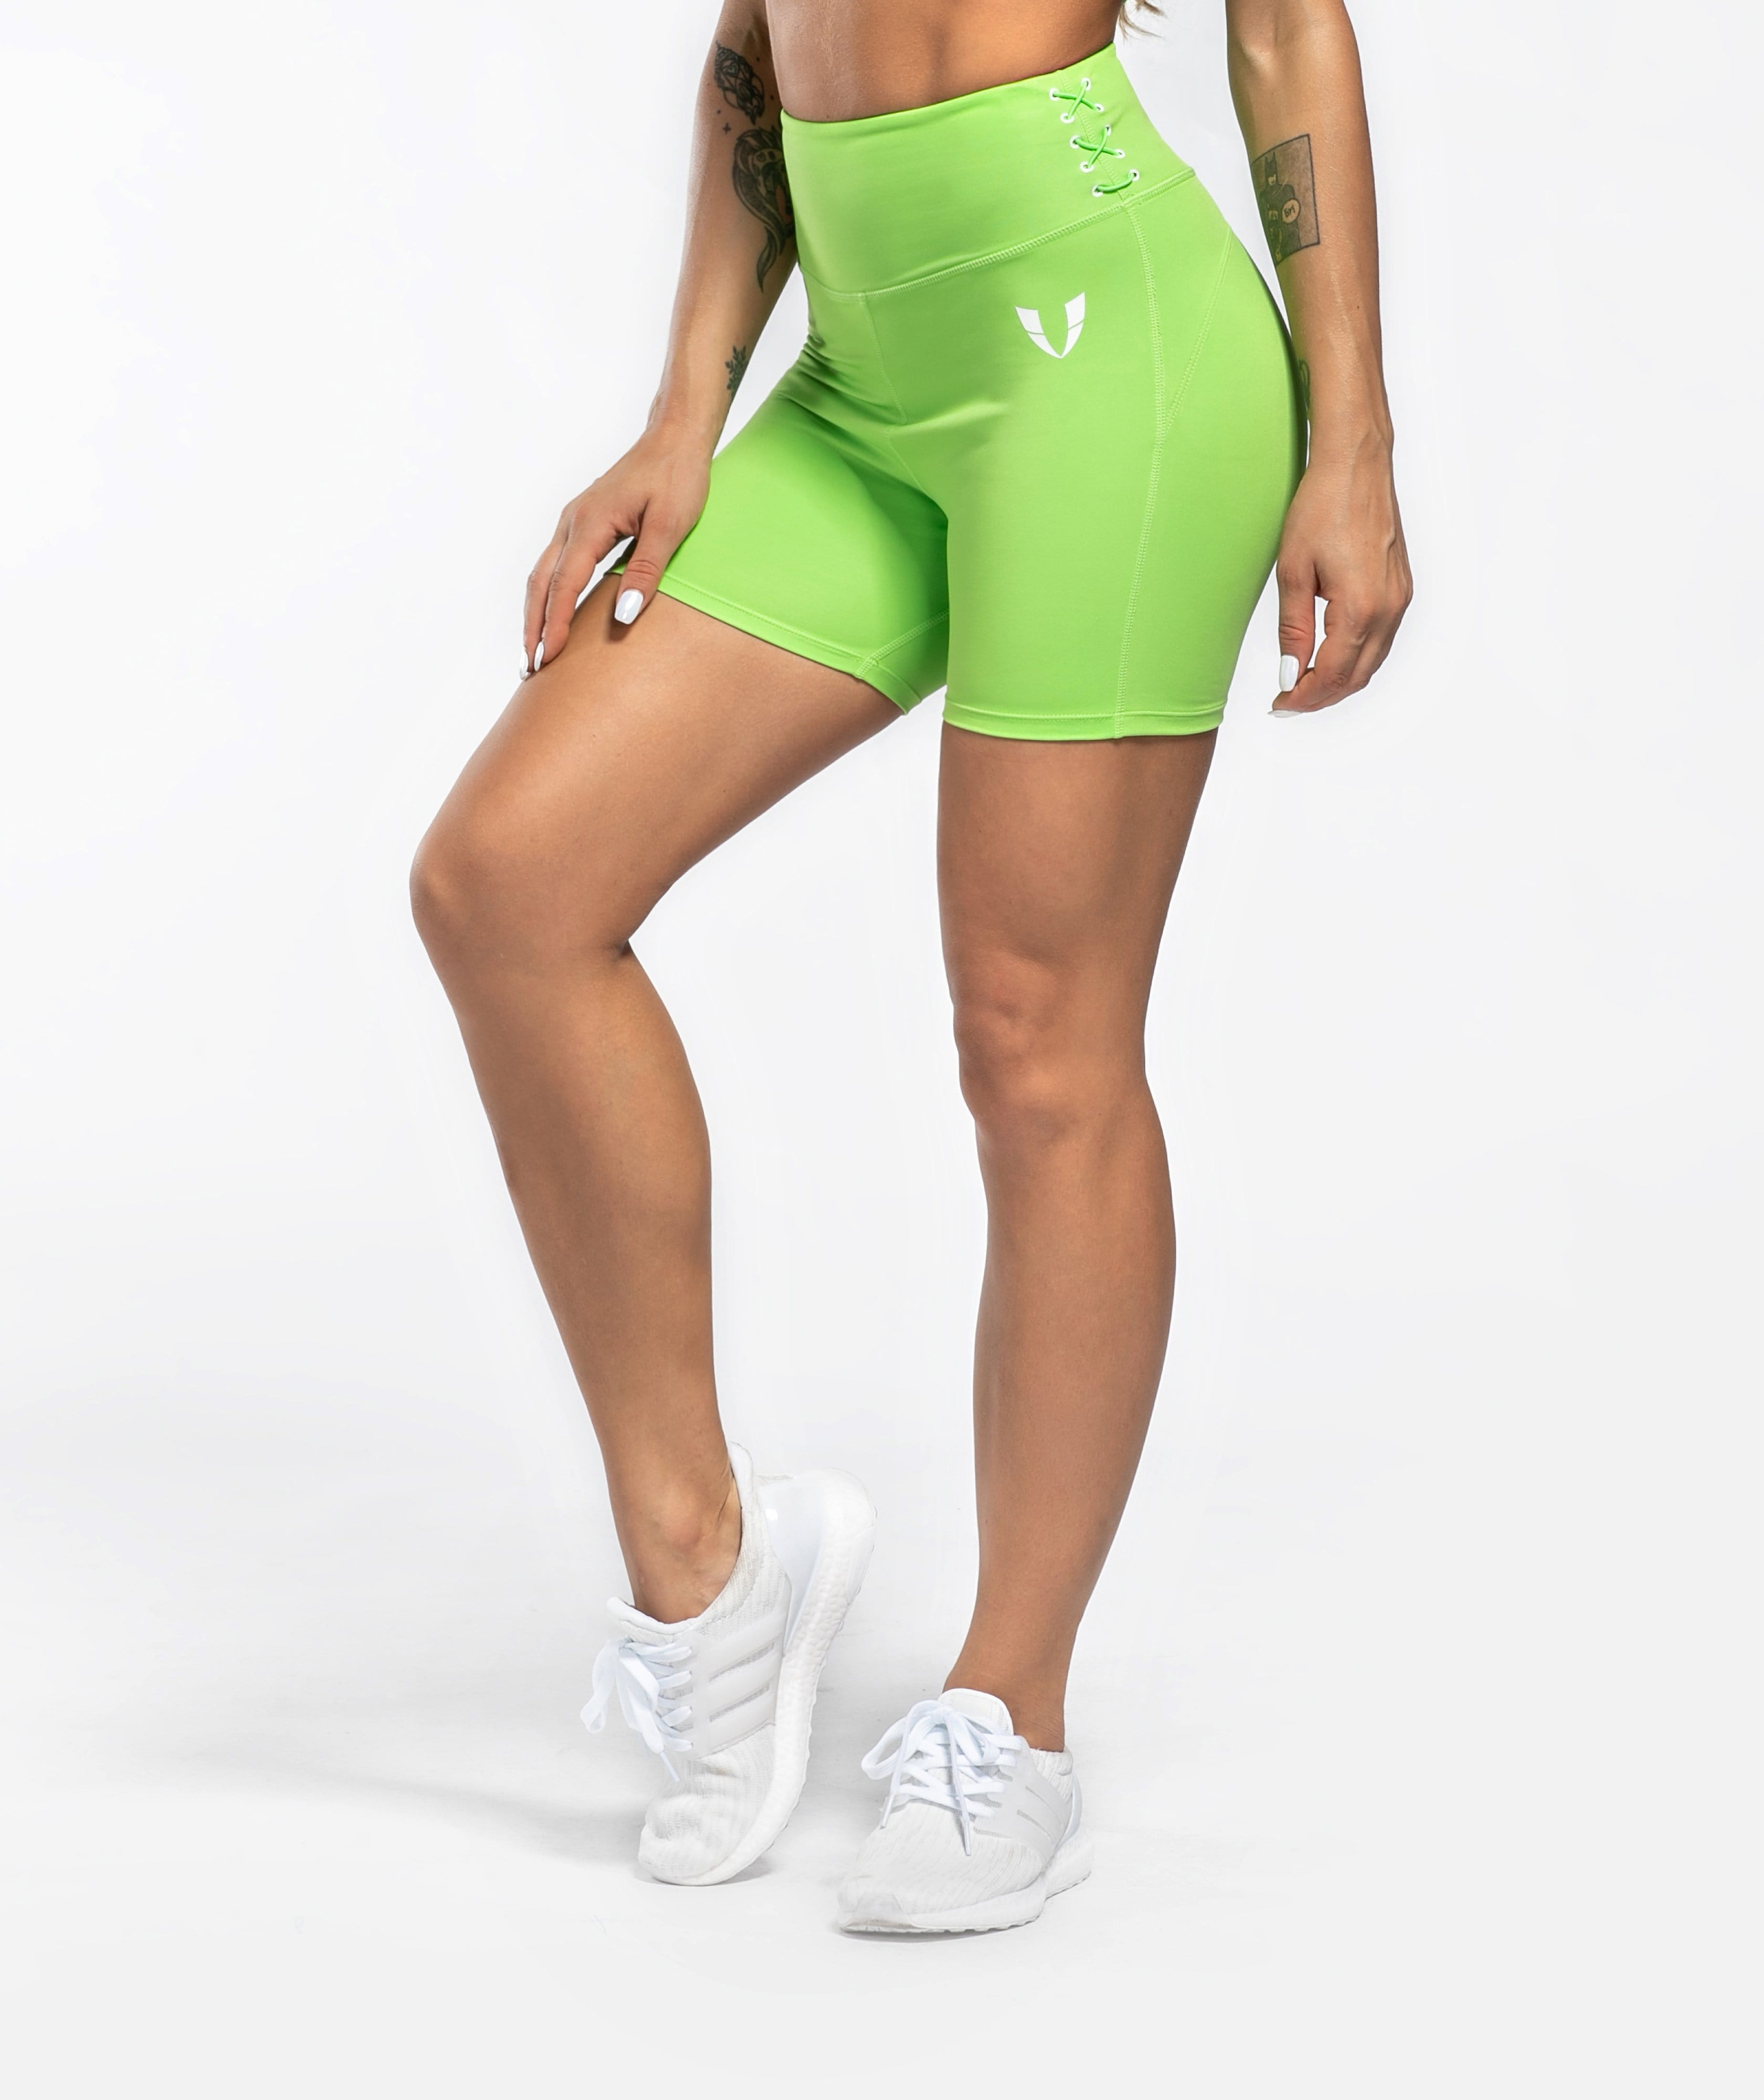 Honeypeach Sculpt Shorts - Green - Firm Abs Fitness